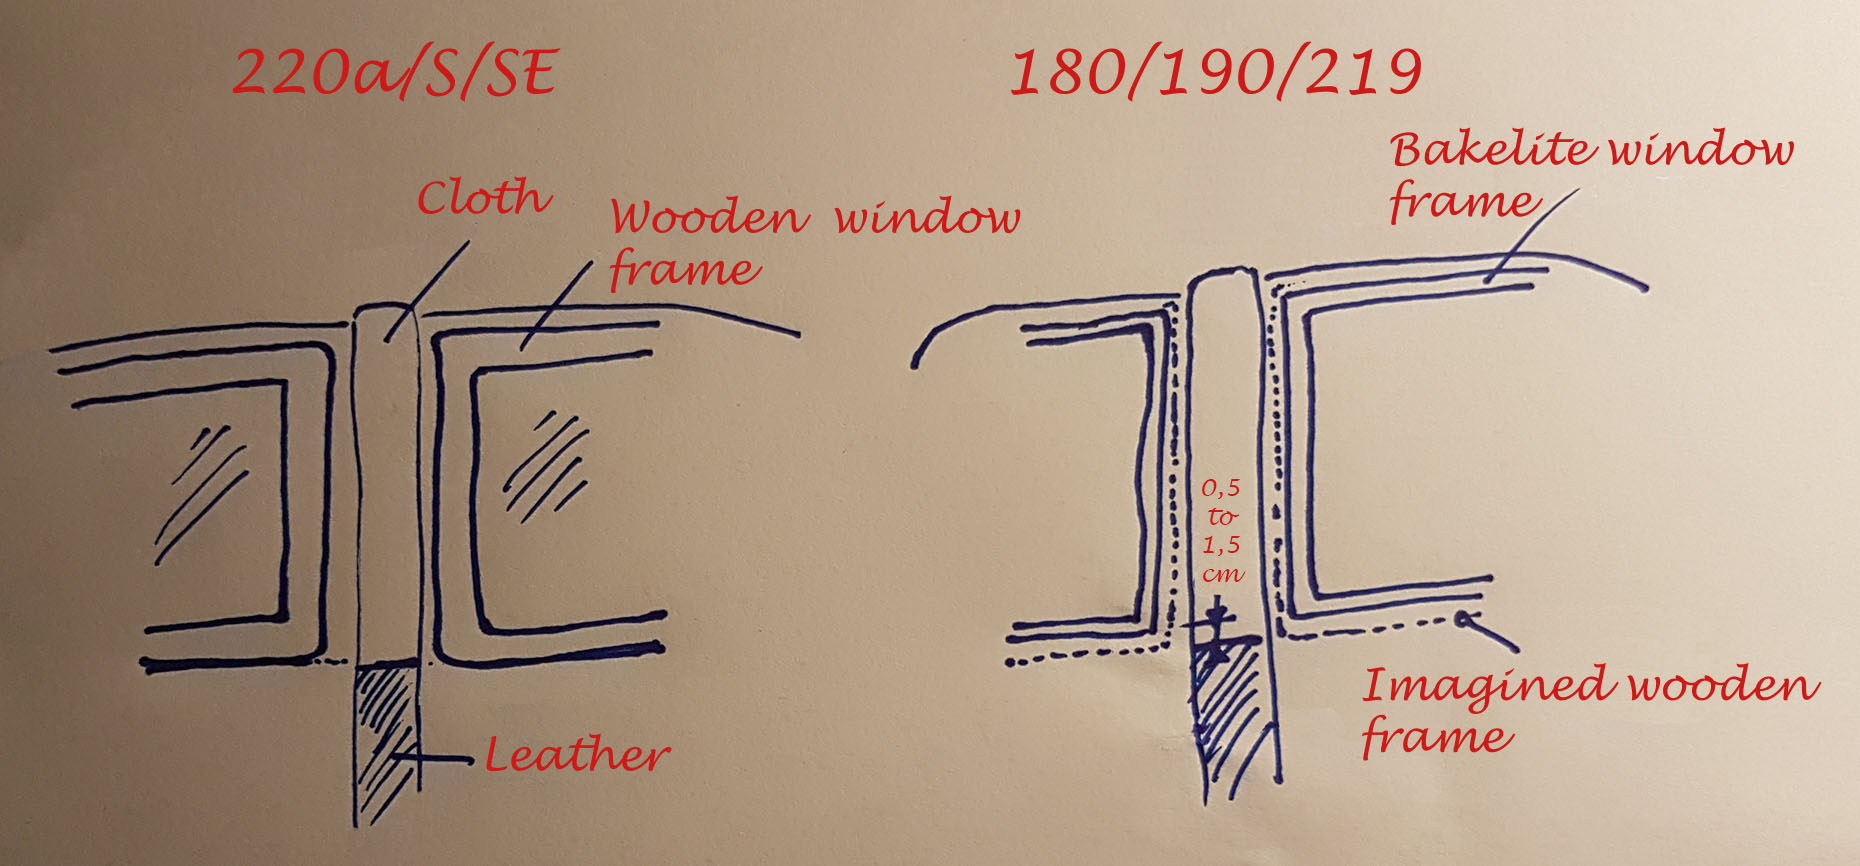 Drawing explaining the theory behind the gap between the cloth/leather joint and the bakelite window frame on a Mercedes Ponton